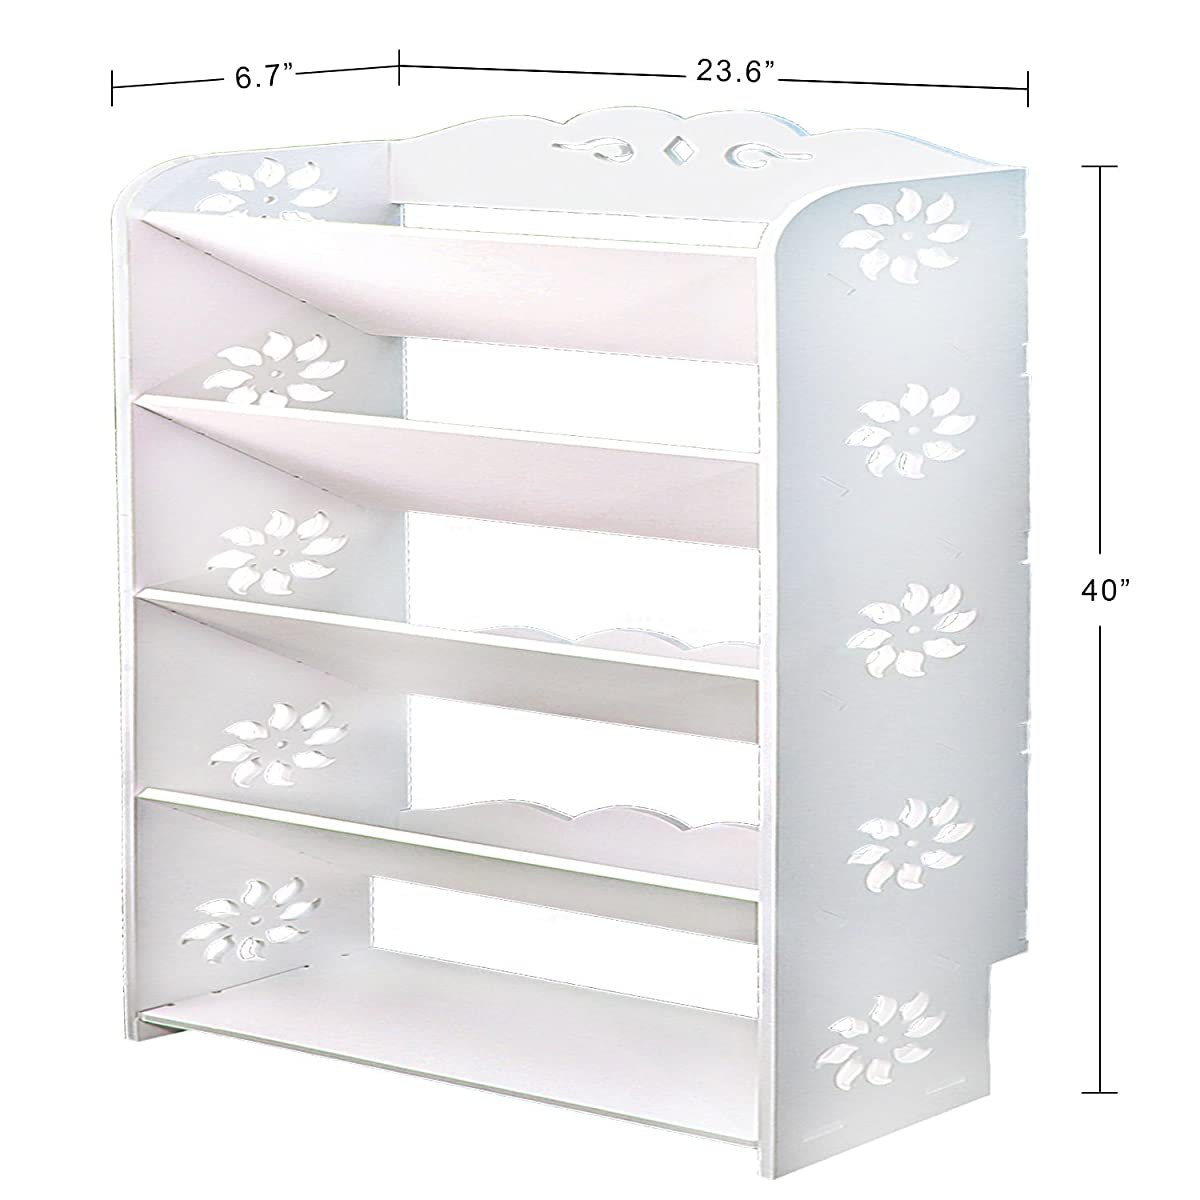 """Met Life - Wood Plastic Composite 5 Tier Shoe Rack L 24"""" x W 6.7"""" x H 40"""" WPC is Anti Decay, Anti Dust, Water Proof, Minimum Maintenance and Eco Friendly 